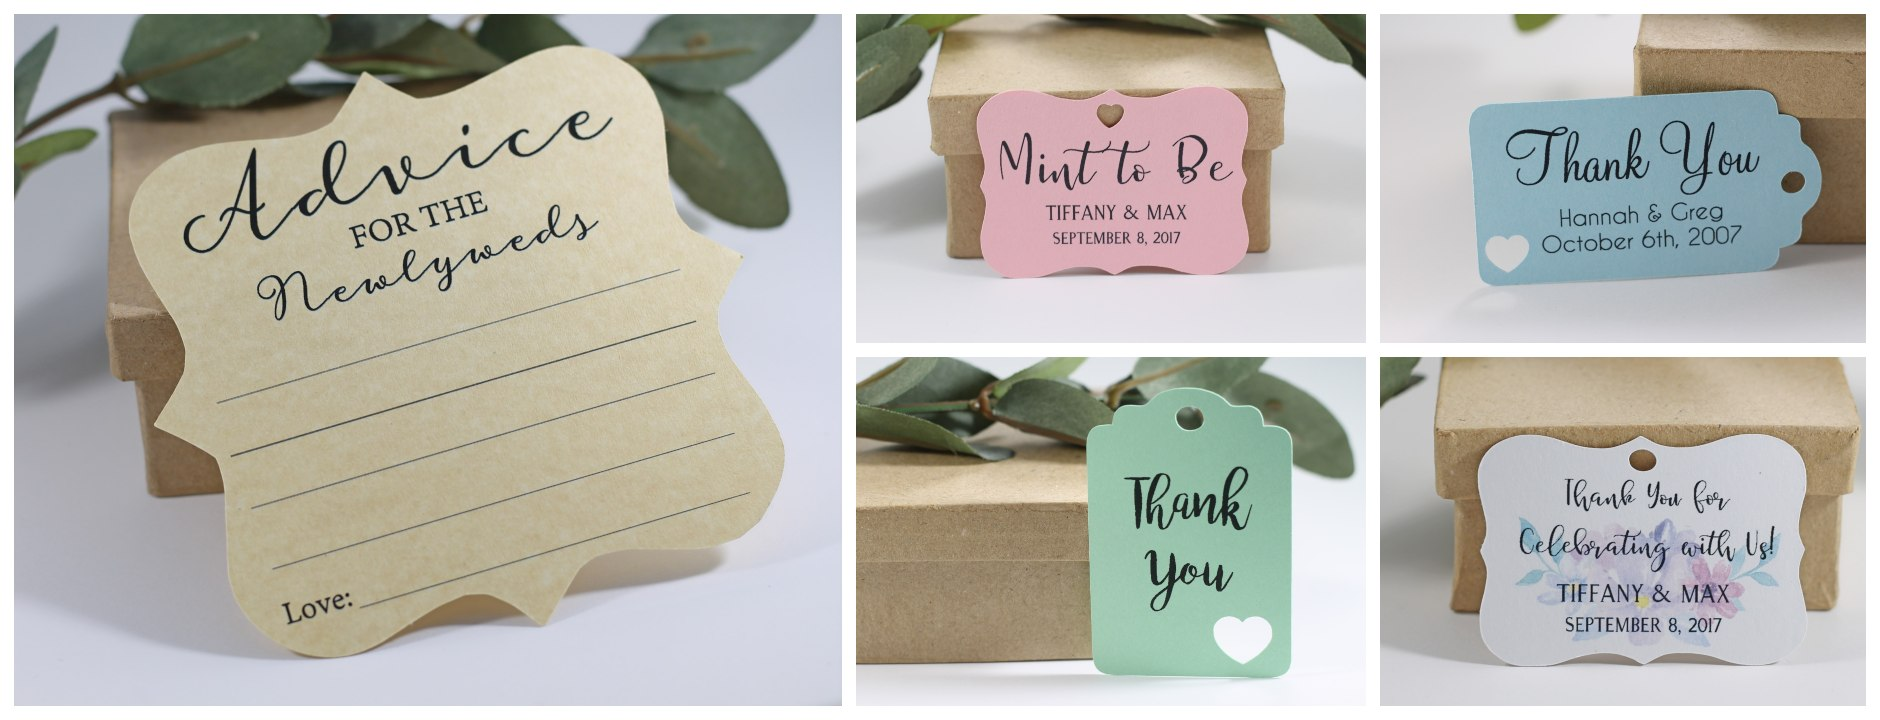 Bridal shower and wedding favor tags